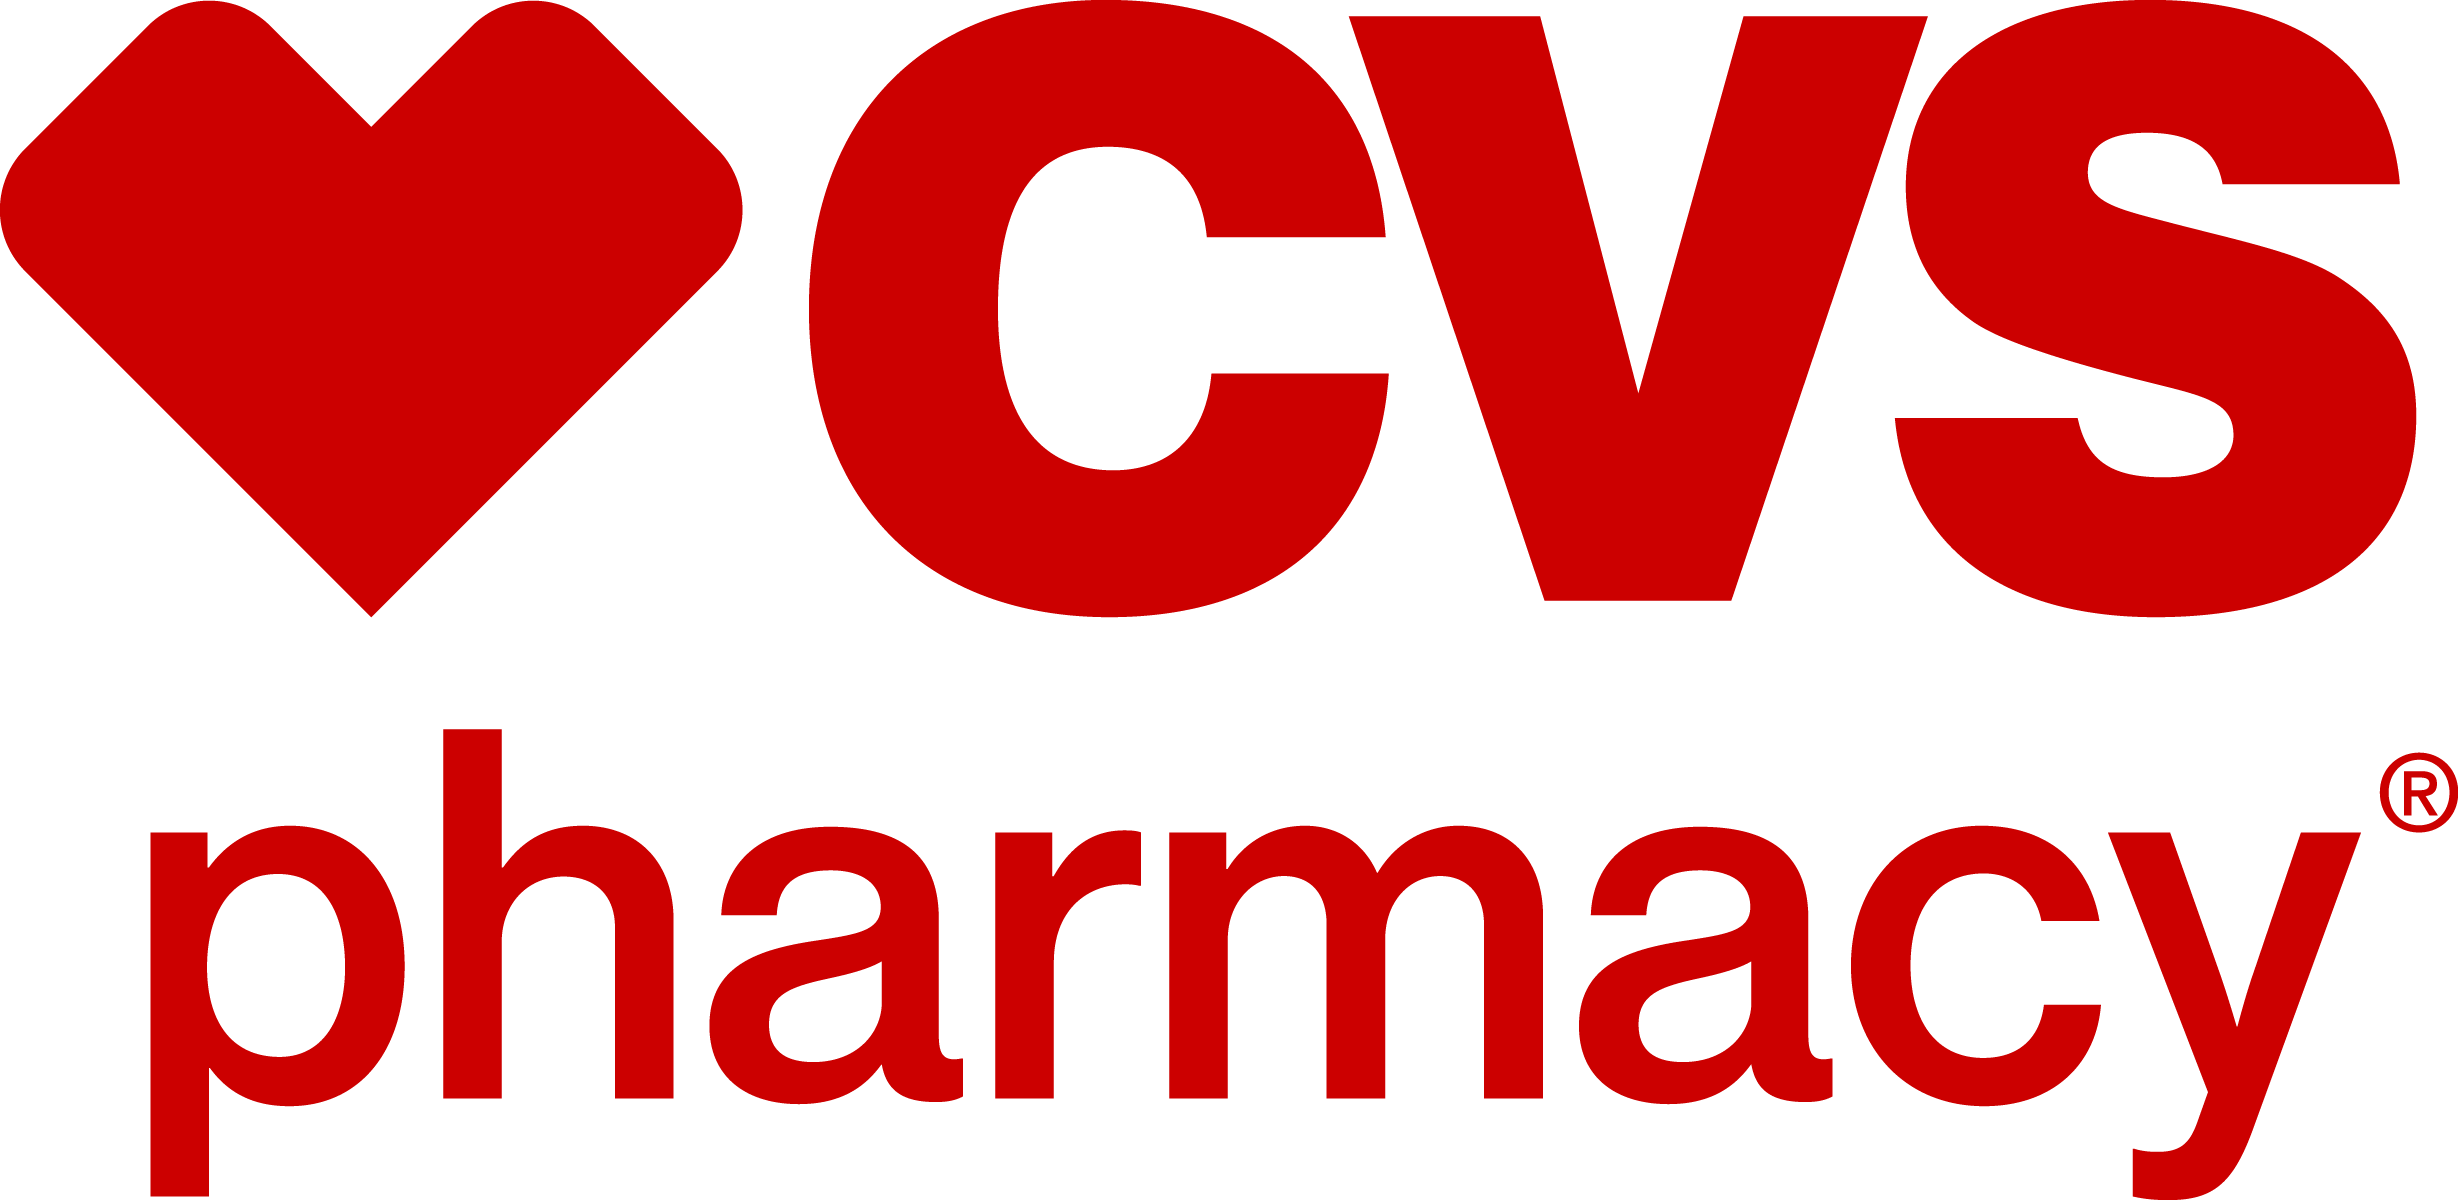 Logotipo de farmacia CVS